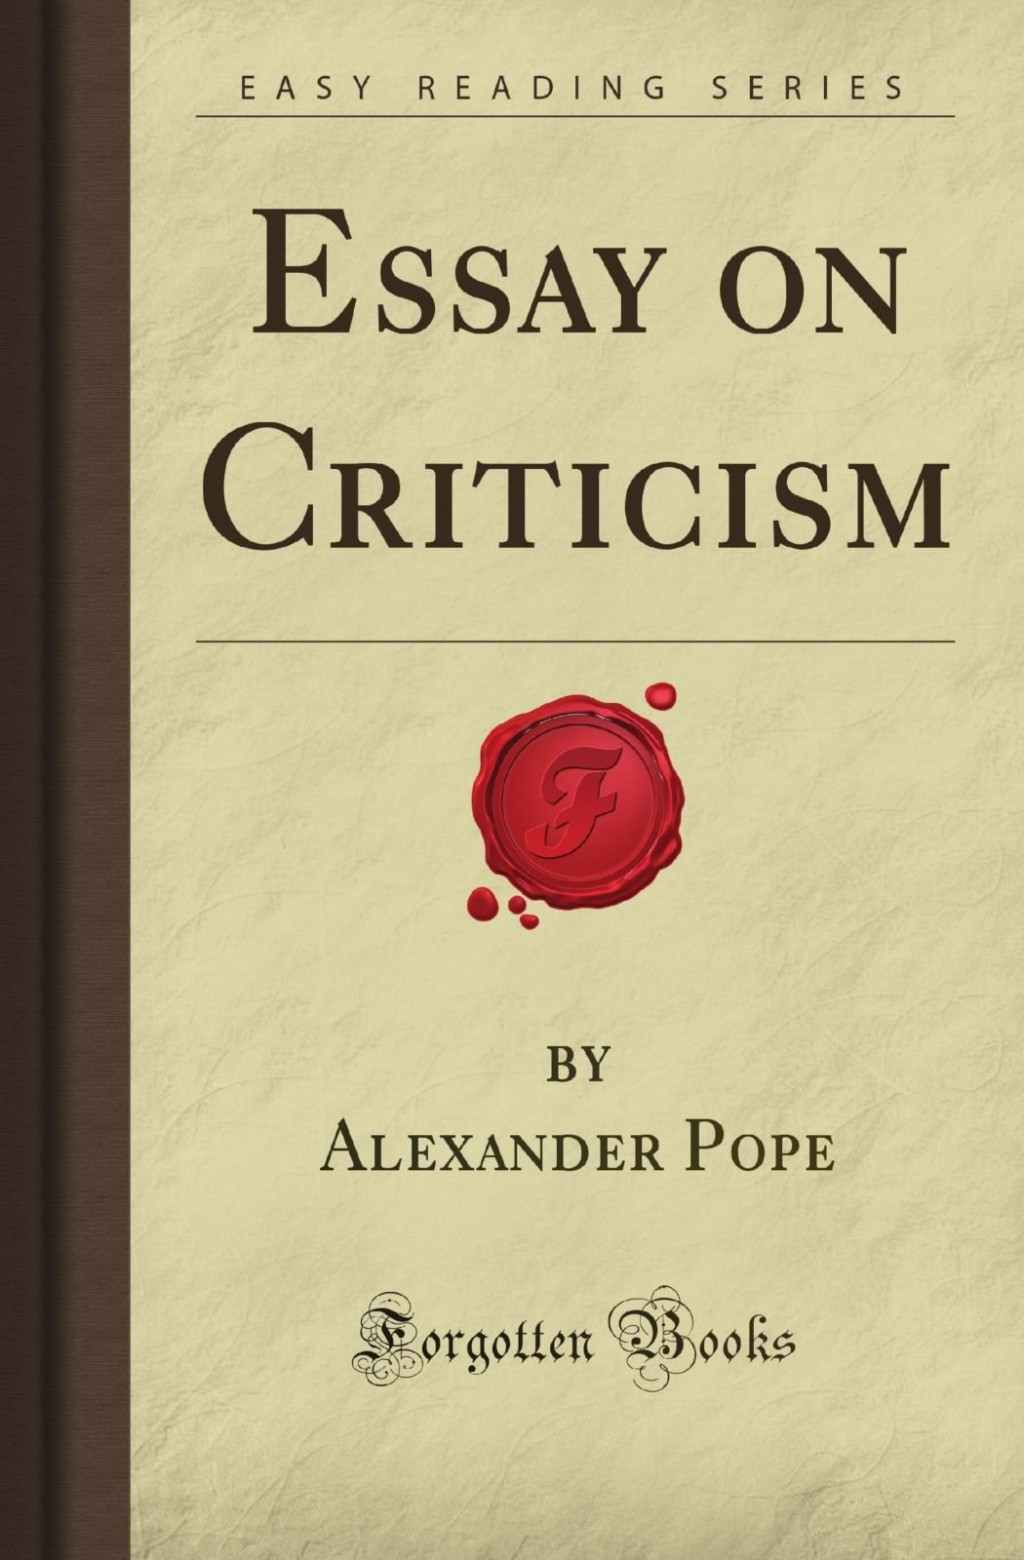 001 71nacz5cahl Alexander Pope Essay On Criticism Outstanding Part 1 Analysis Summary Large